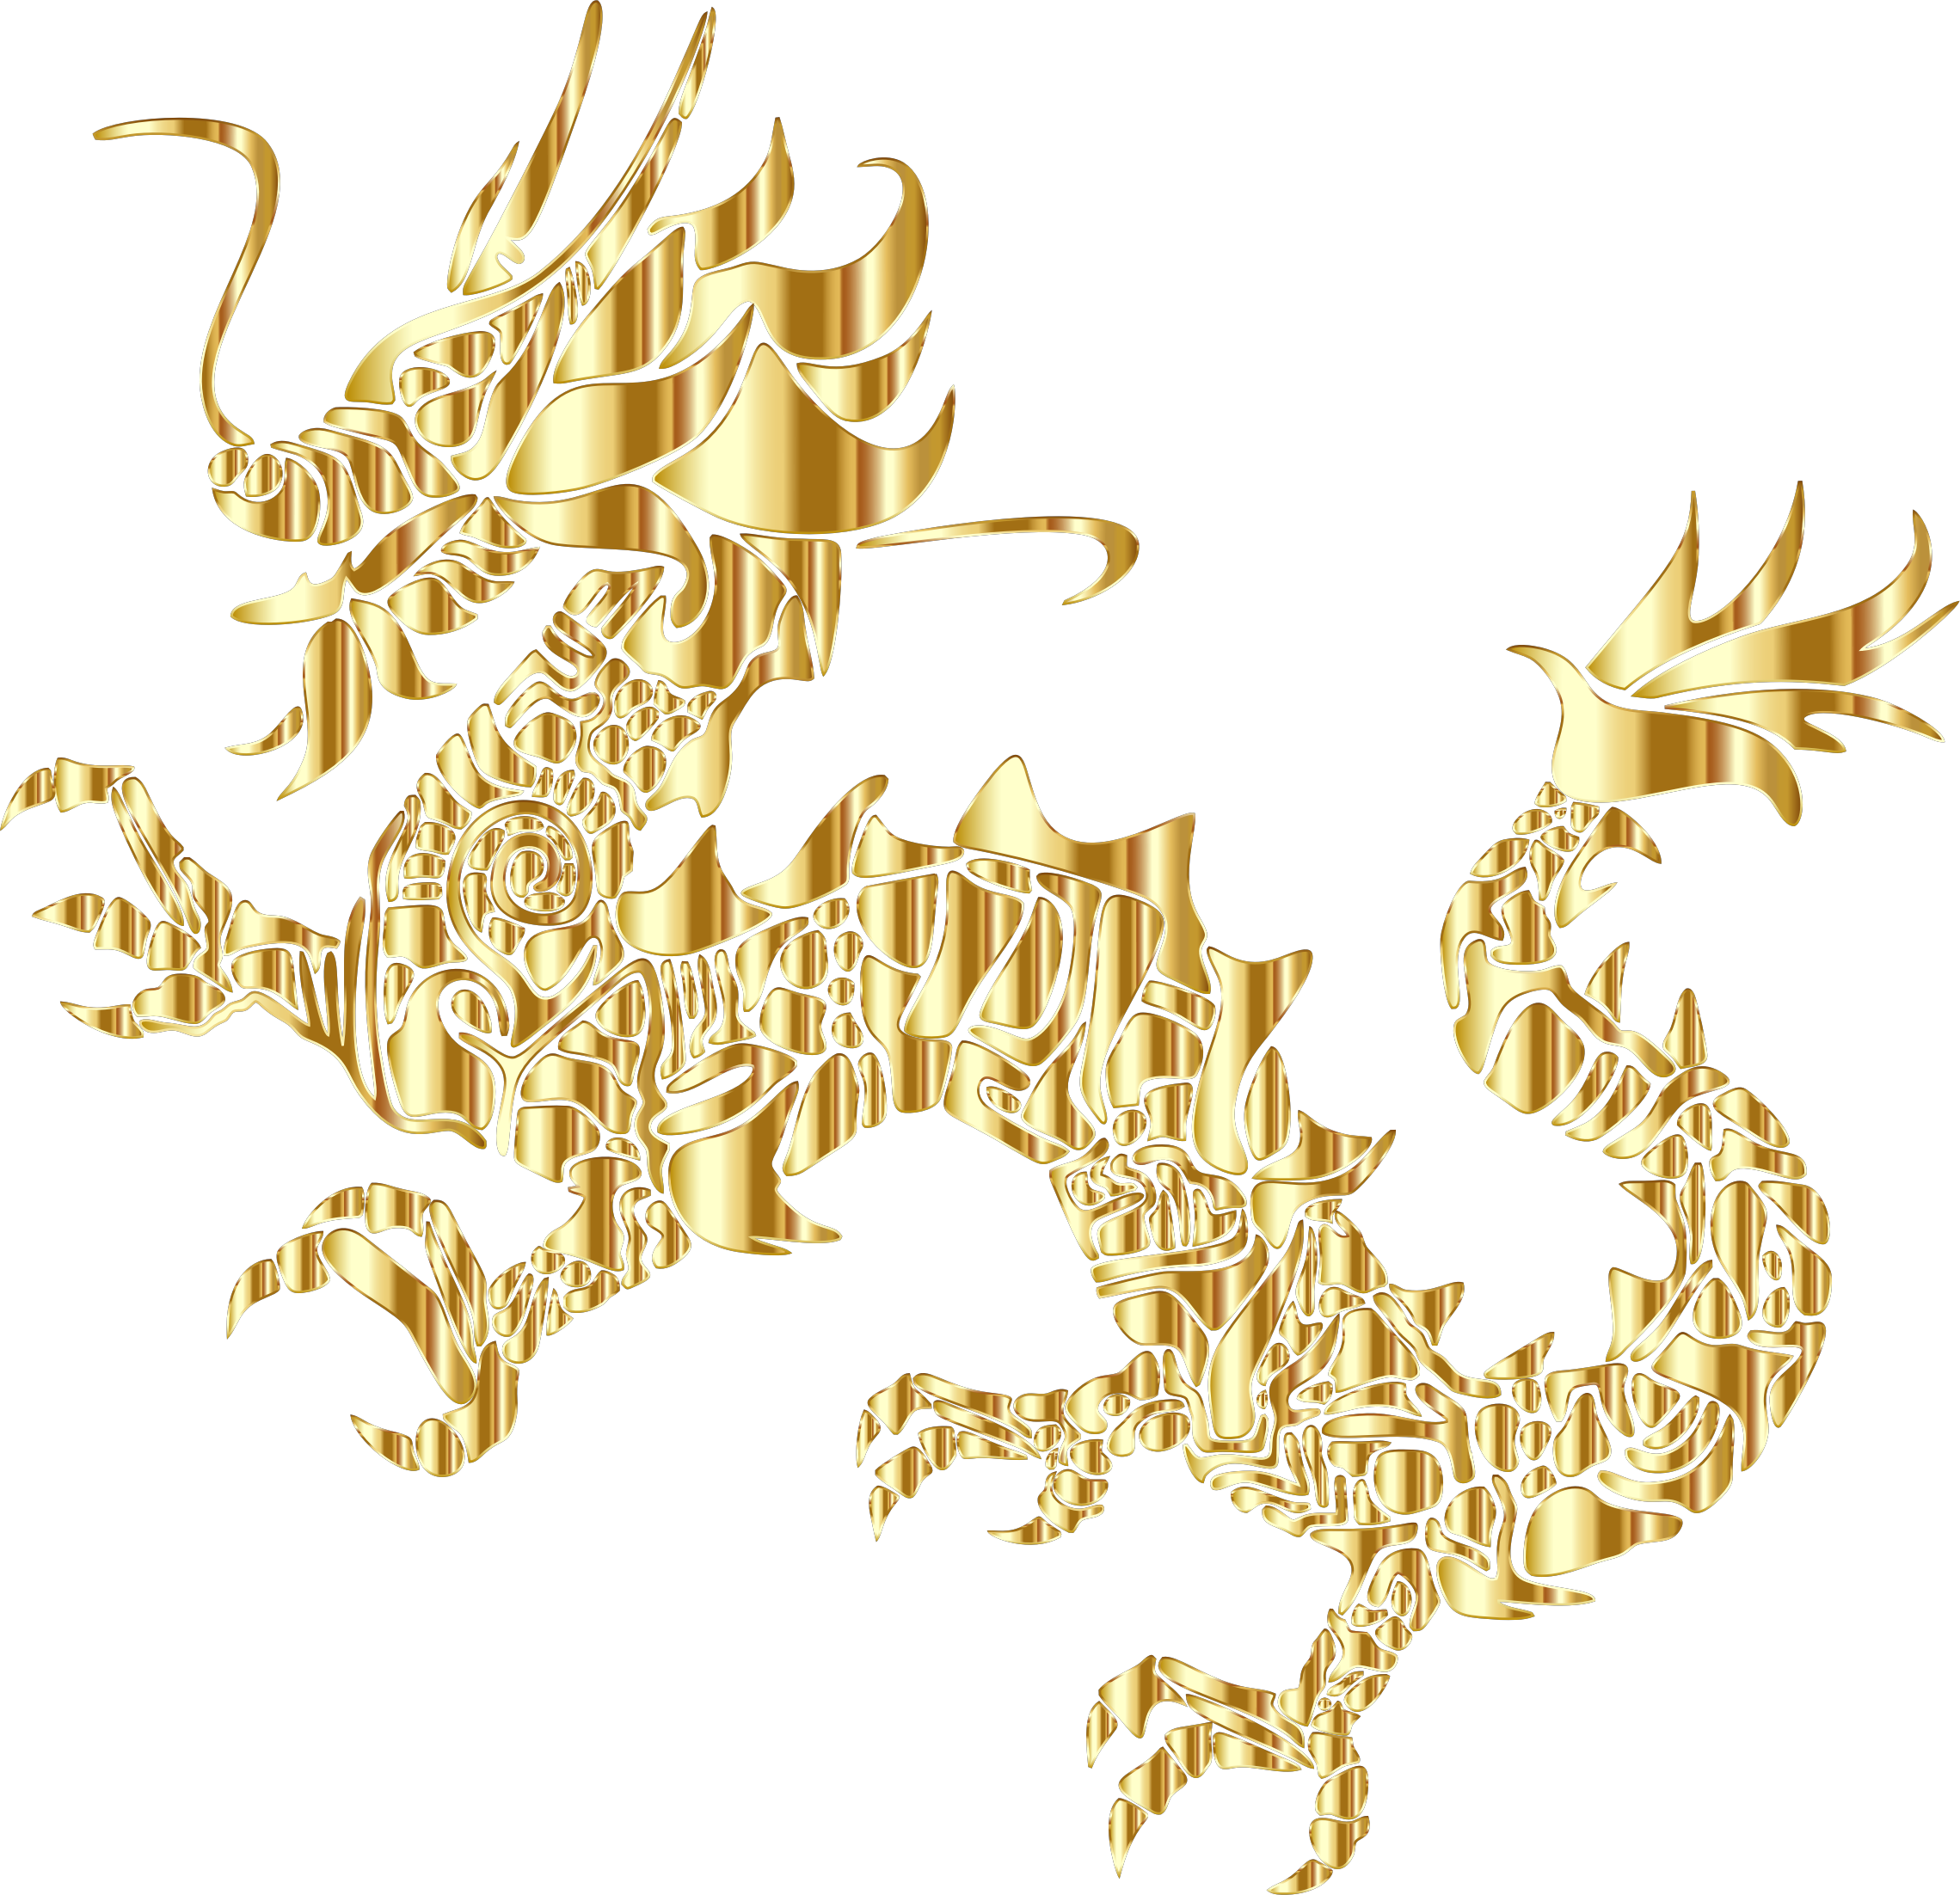 Gold Tribal Asian Dragon Silhouette No Background by GDJ